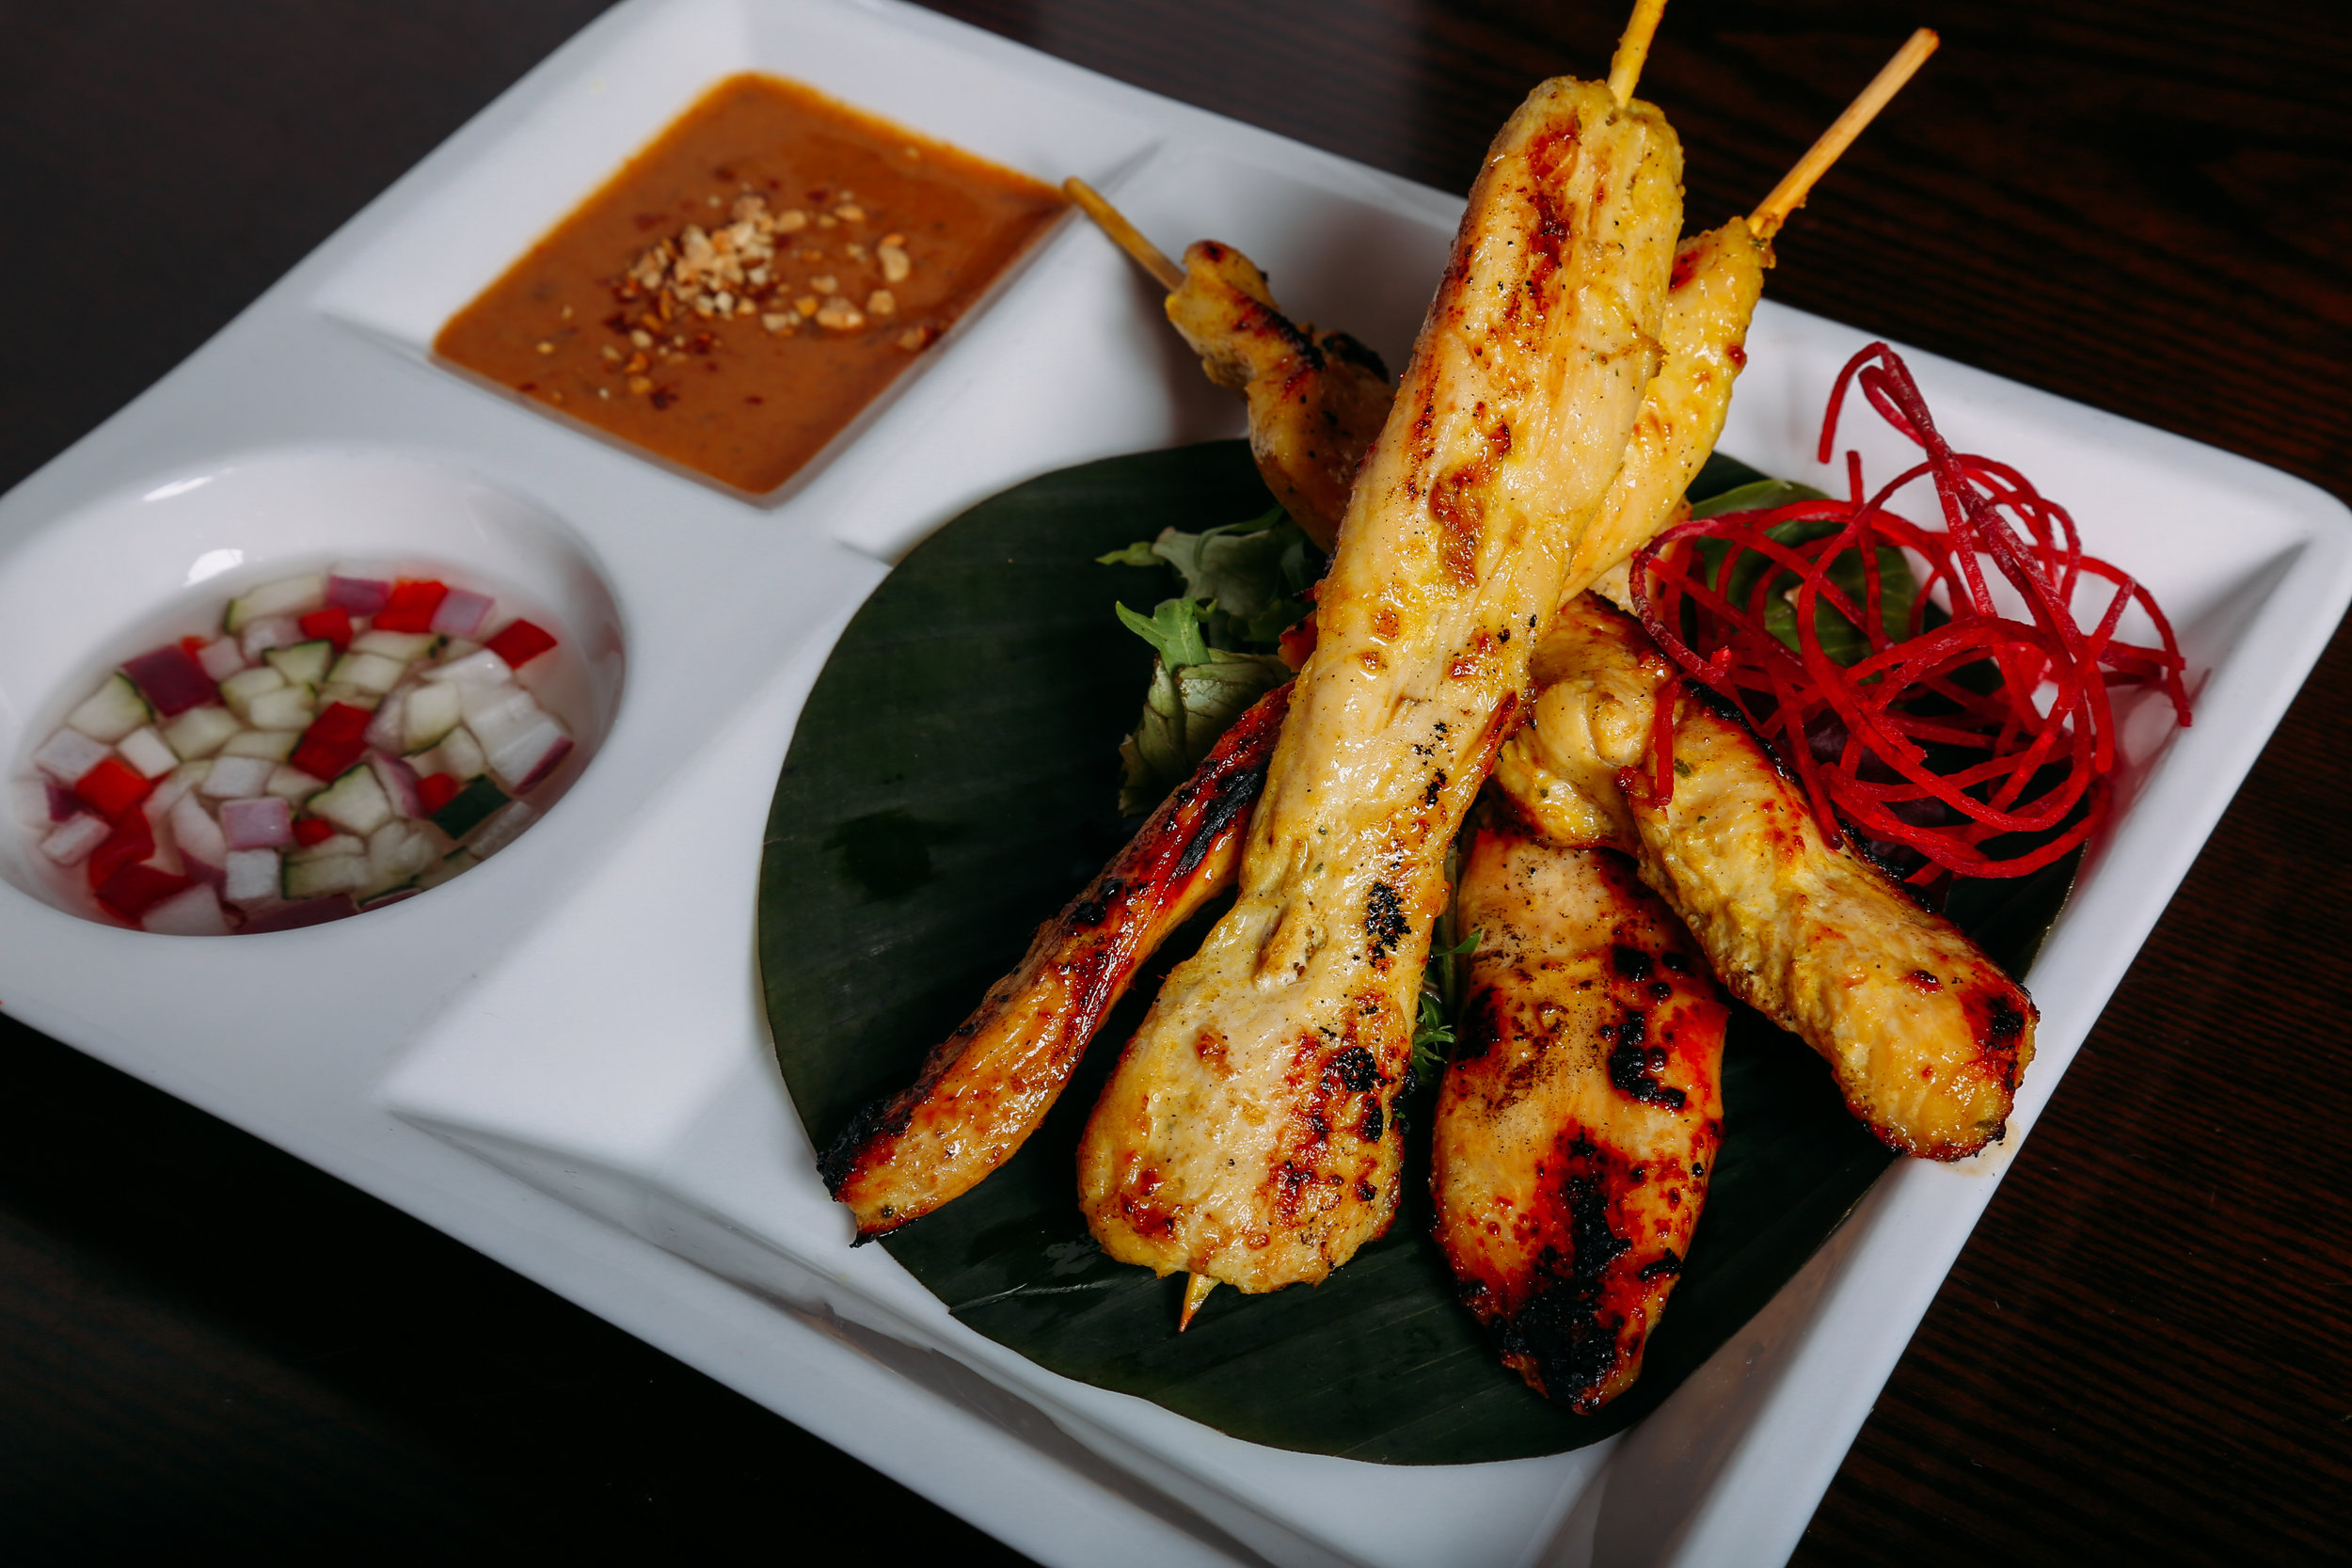 Chicken Sate      - Marinated barbecue chicken grilled on skewer with peanut sauce and cucumber relish.